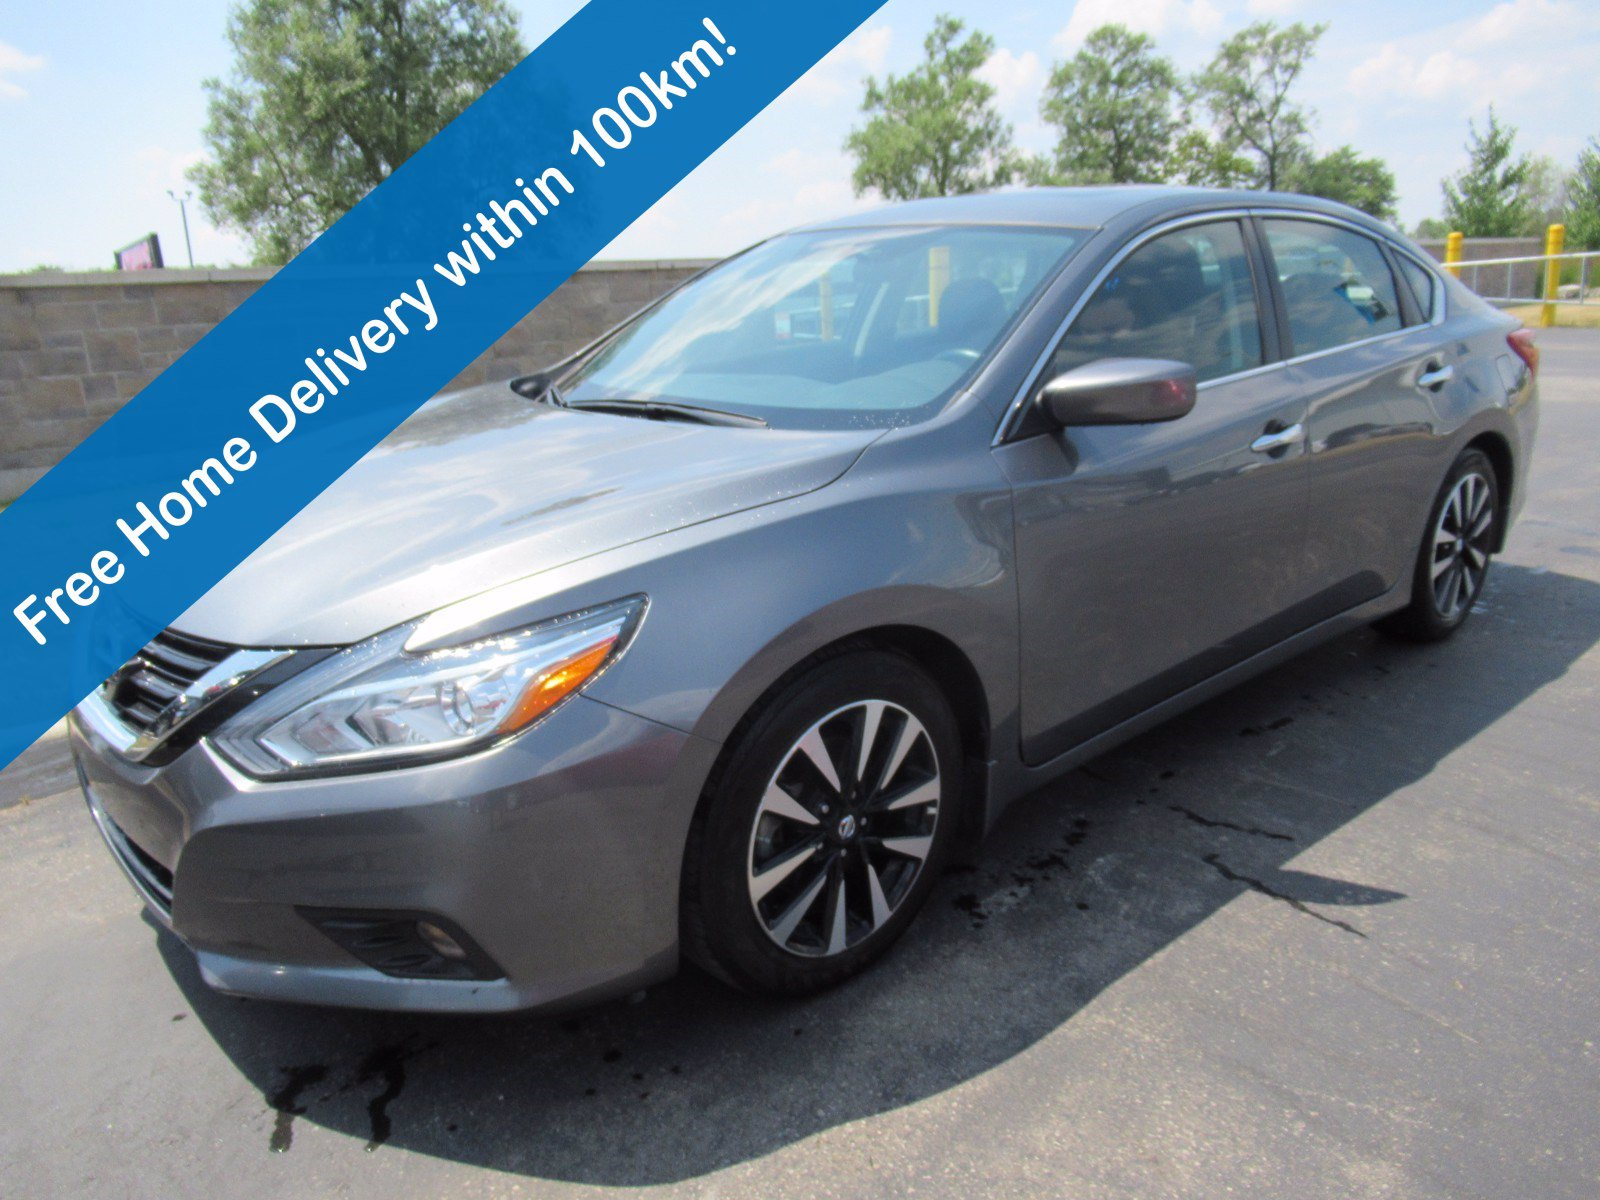 Certified Pre-Owned 2018 Nissan Altima 2.5 SV, Sunroof, Rear Camera, Bluetooth, Heated Seats, Alloy Wheels & More!